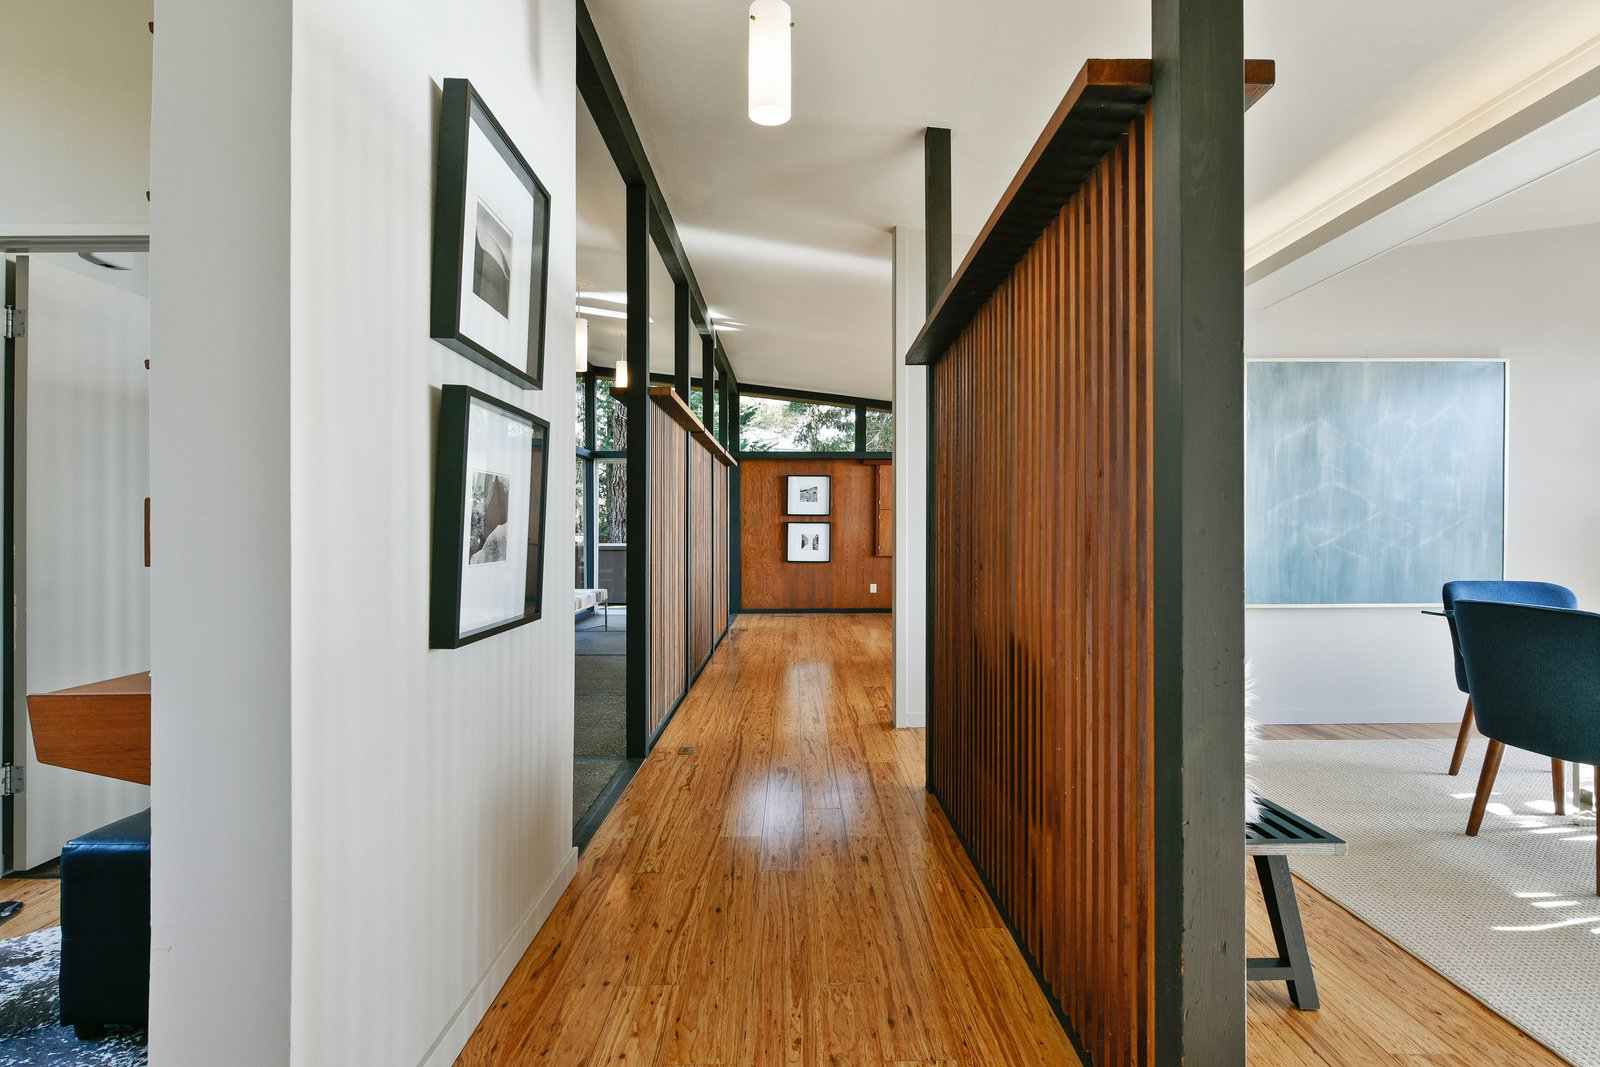 Hallway and Medium Hardwood Floor The central gallery, framed by wood screen walls on both sides, links the main living spaces.  The partitions create a more open, expansive volume.  Photo 5 of 14 in A Bay Area Jewel With Golden Gate Views Wants $1.55M